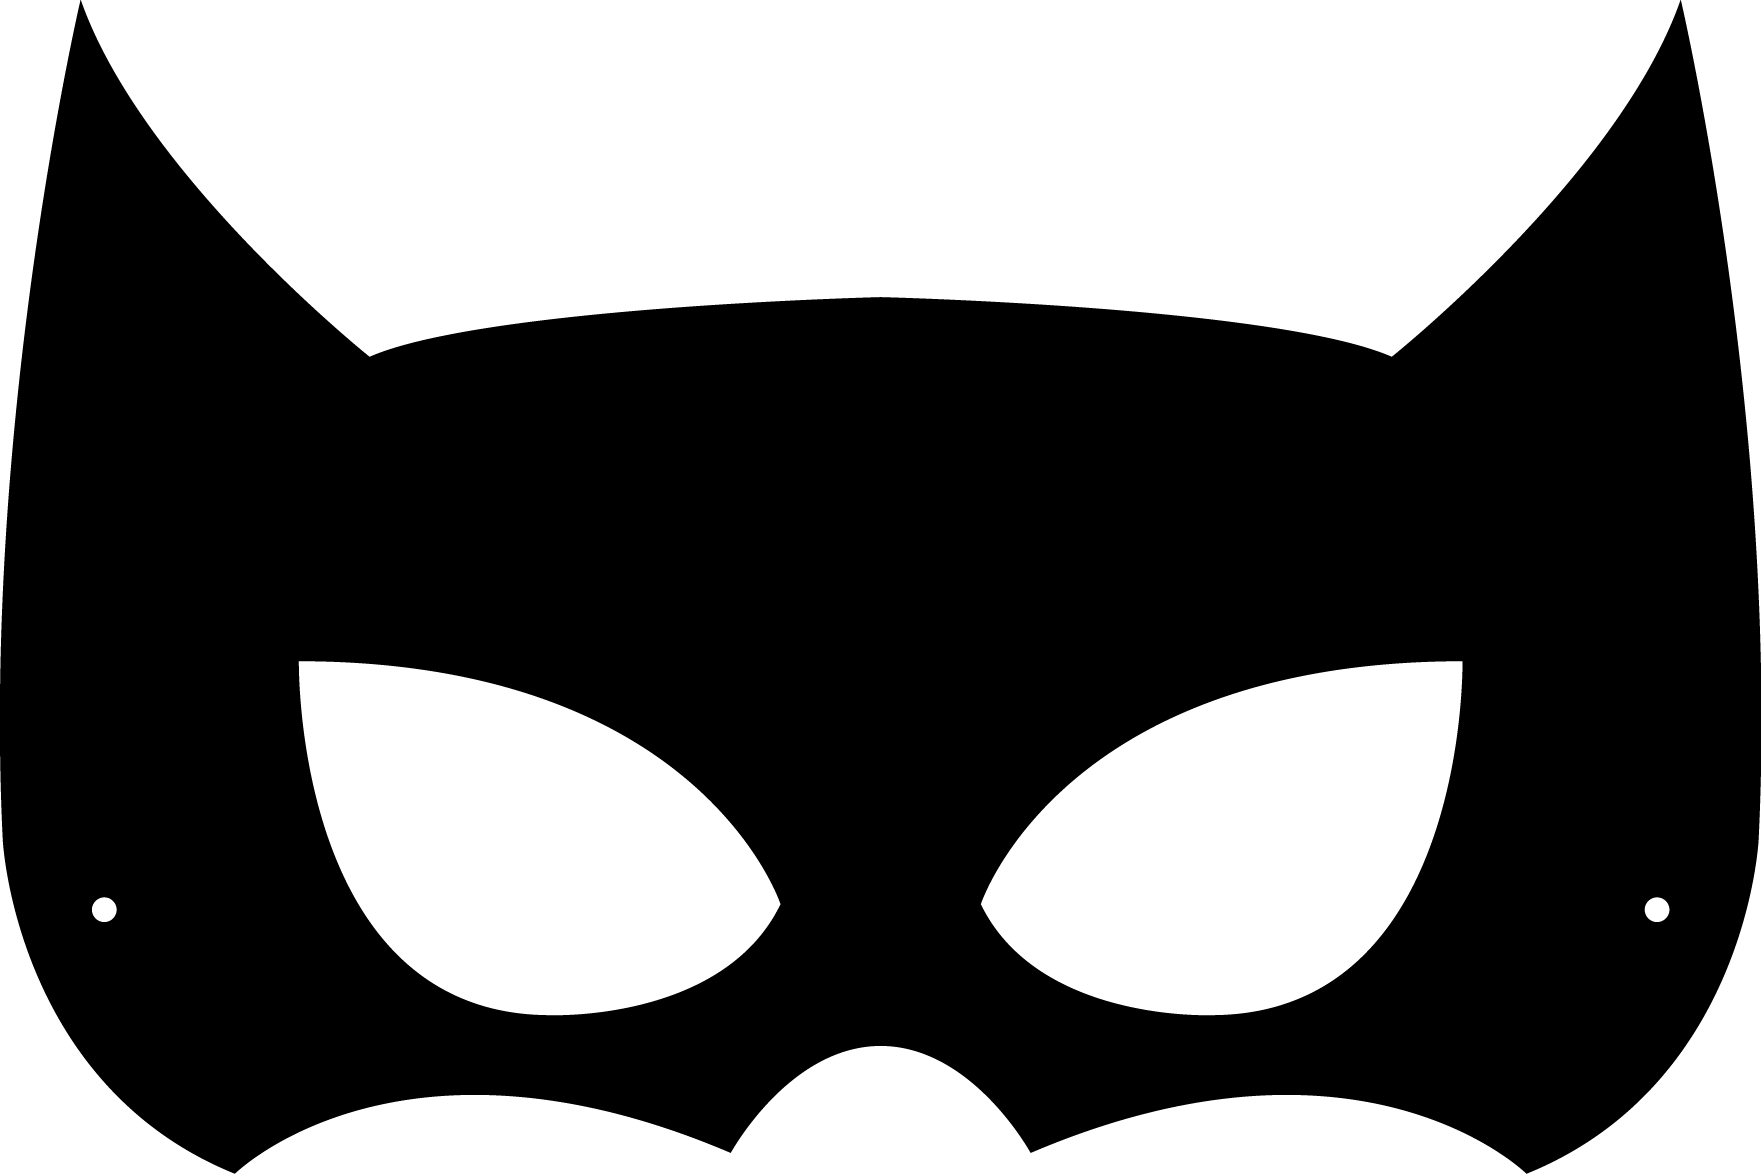 Batman transparent png pictures. Mask clipart robber